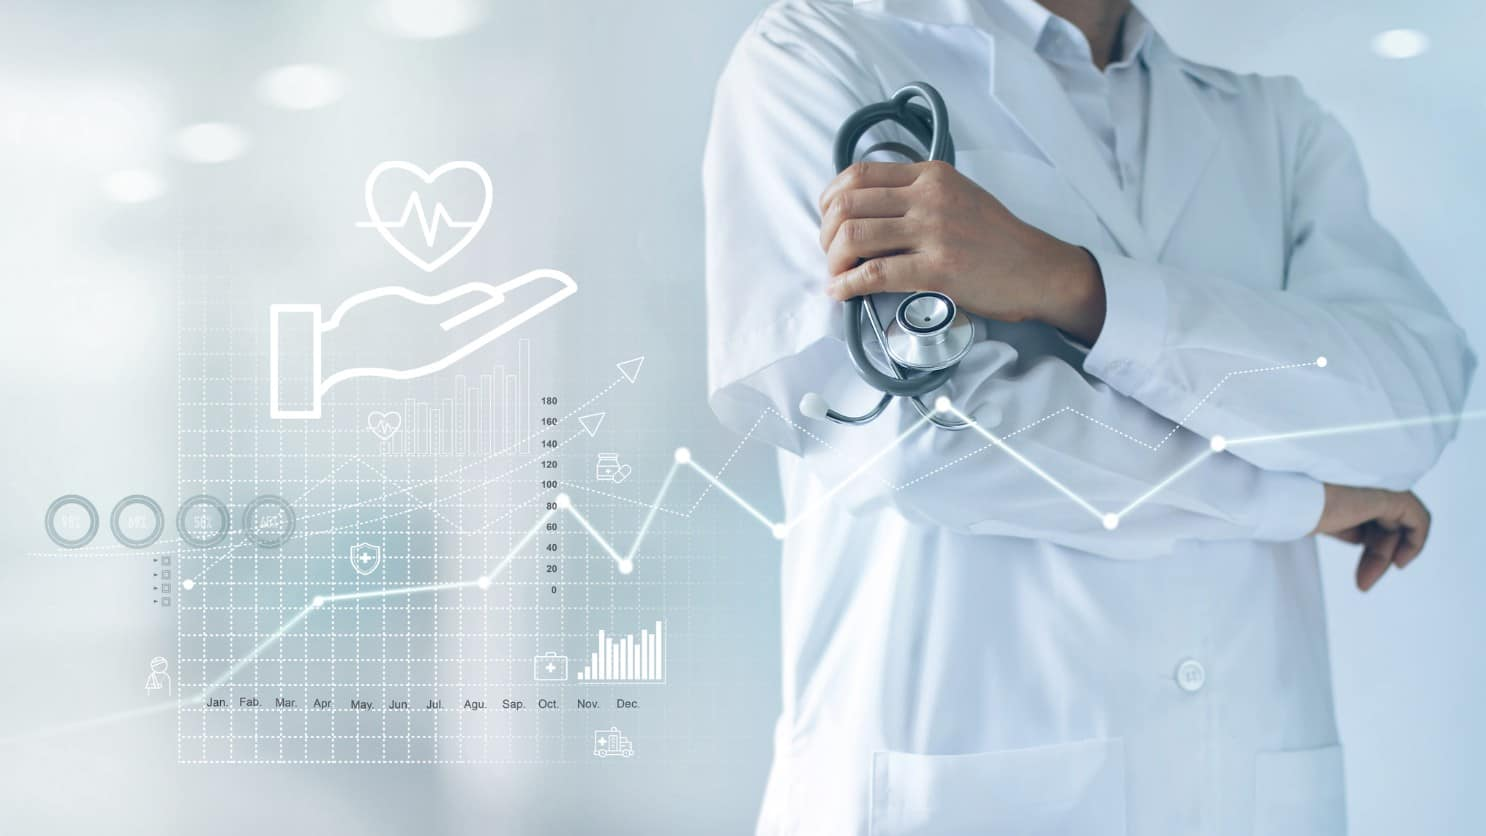 Doctor with stethoscope in hand and data graph showing upward trend